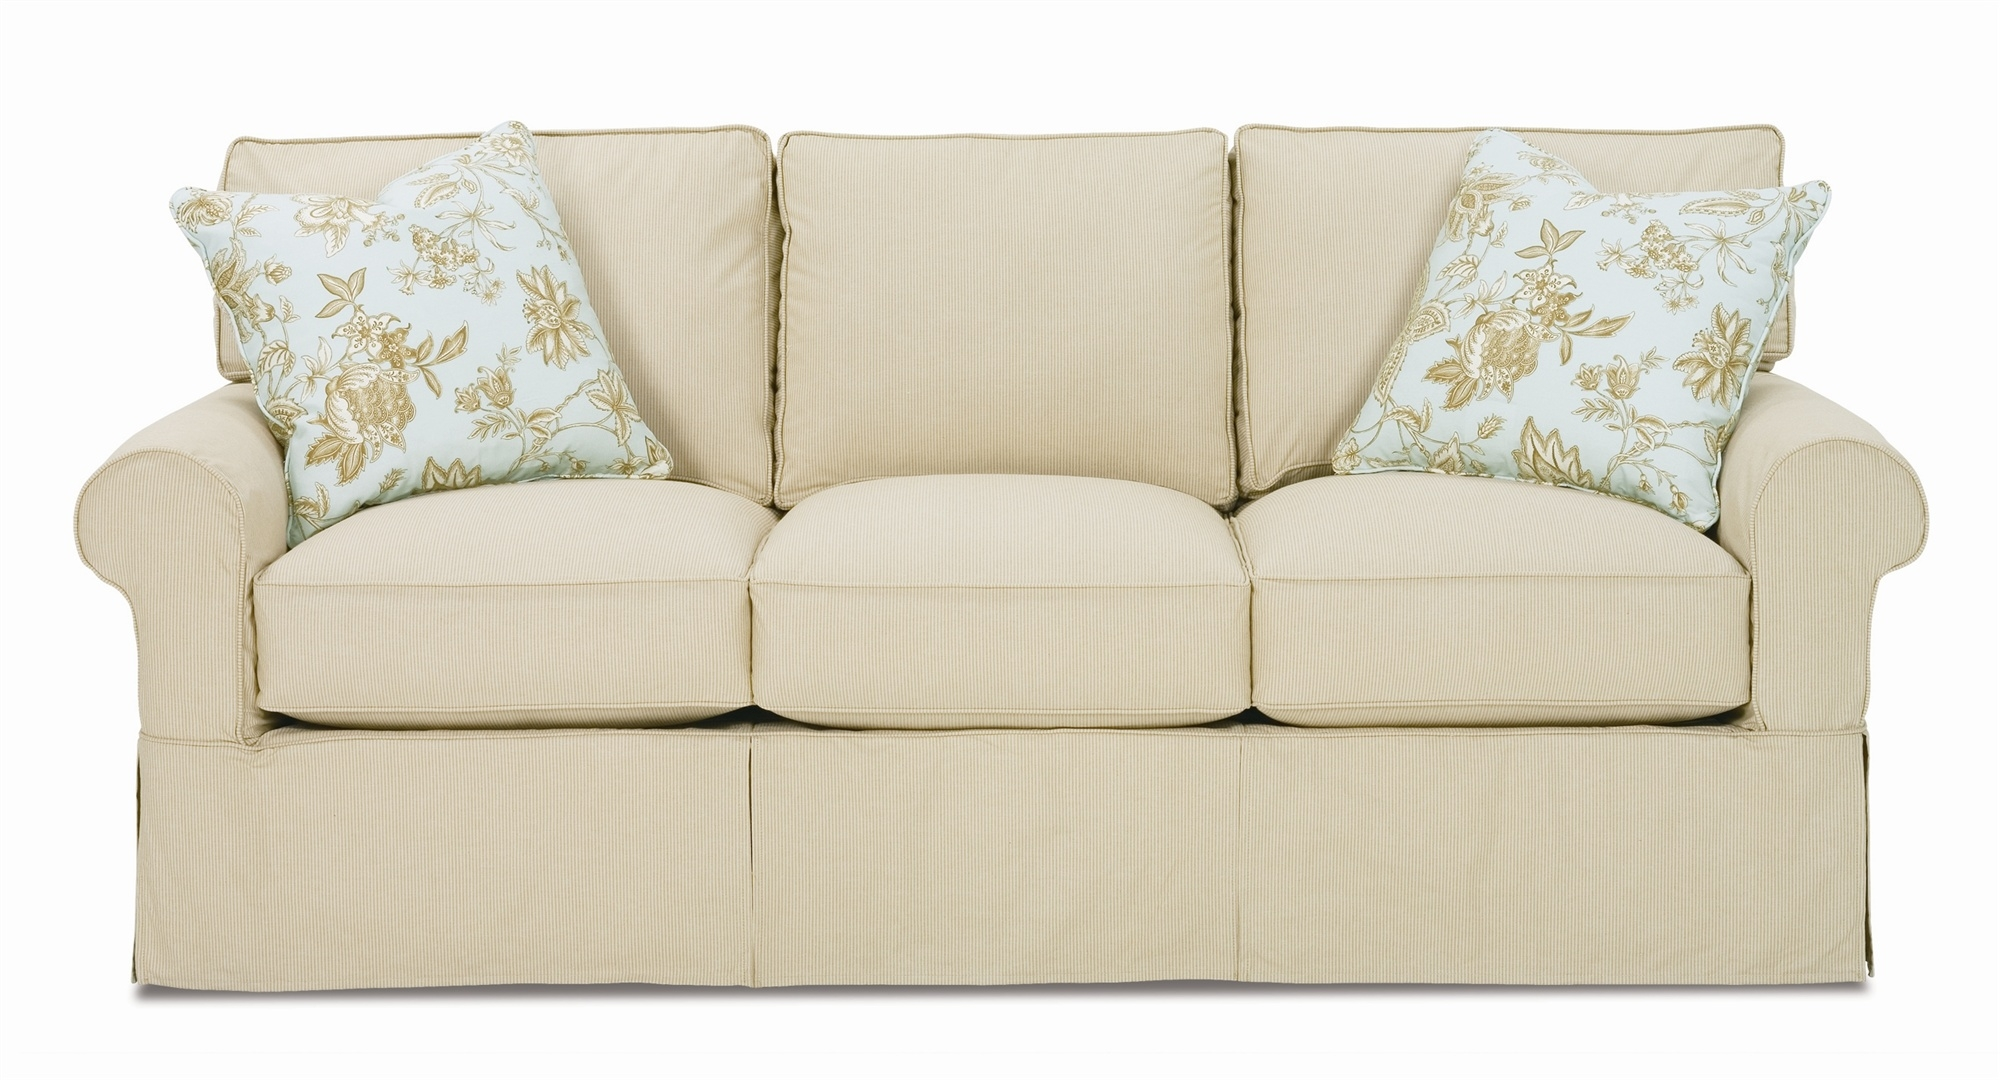 53 Covers For Sofas Sofa Covers Google Search Inspired Interiors Inside Covers For Sofas (Image 2 of 15)